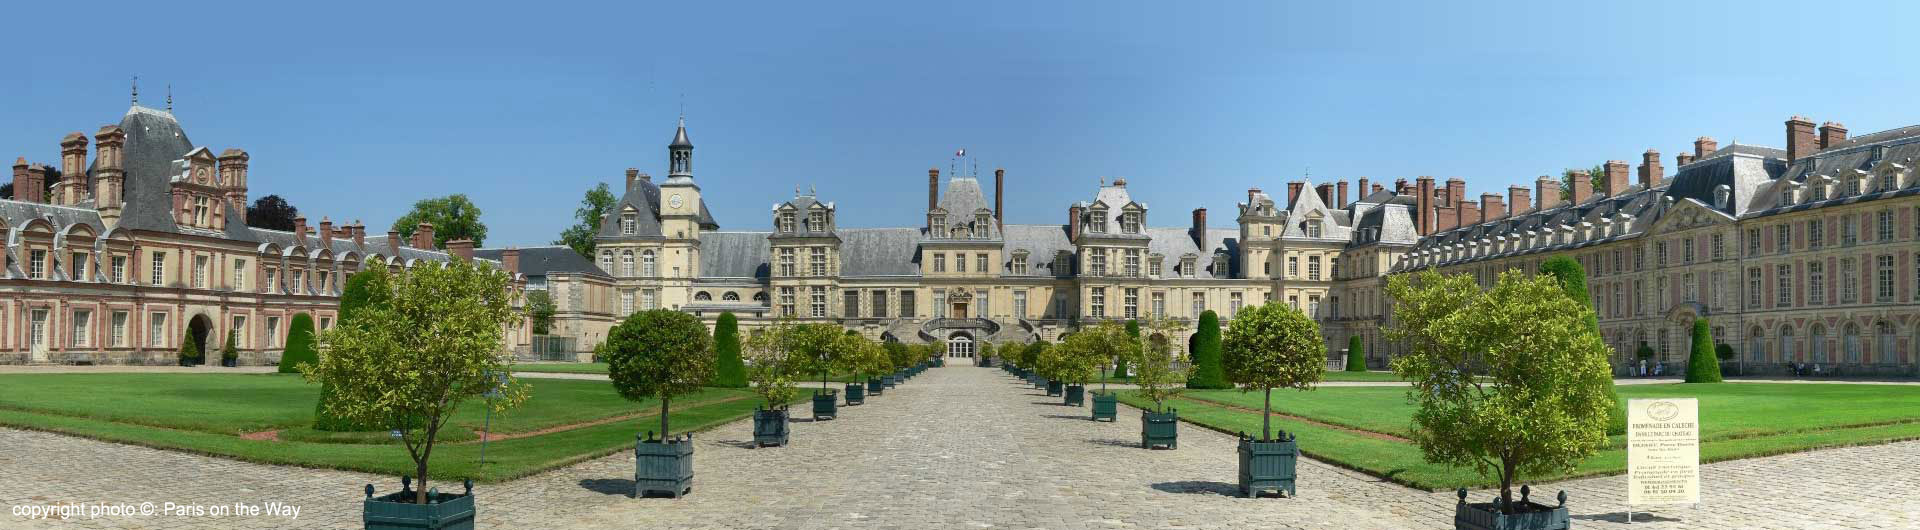 Guided Tour of Fontainebleau